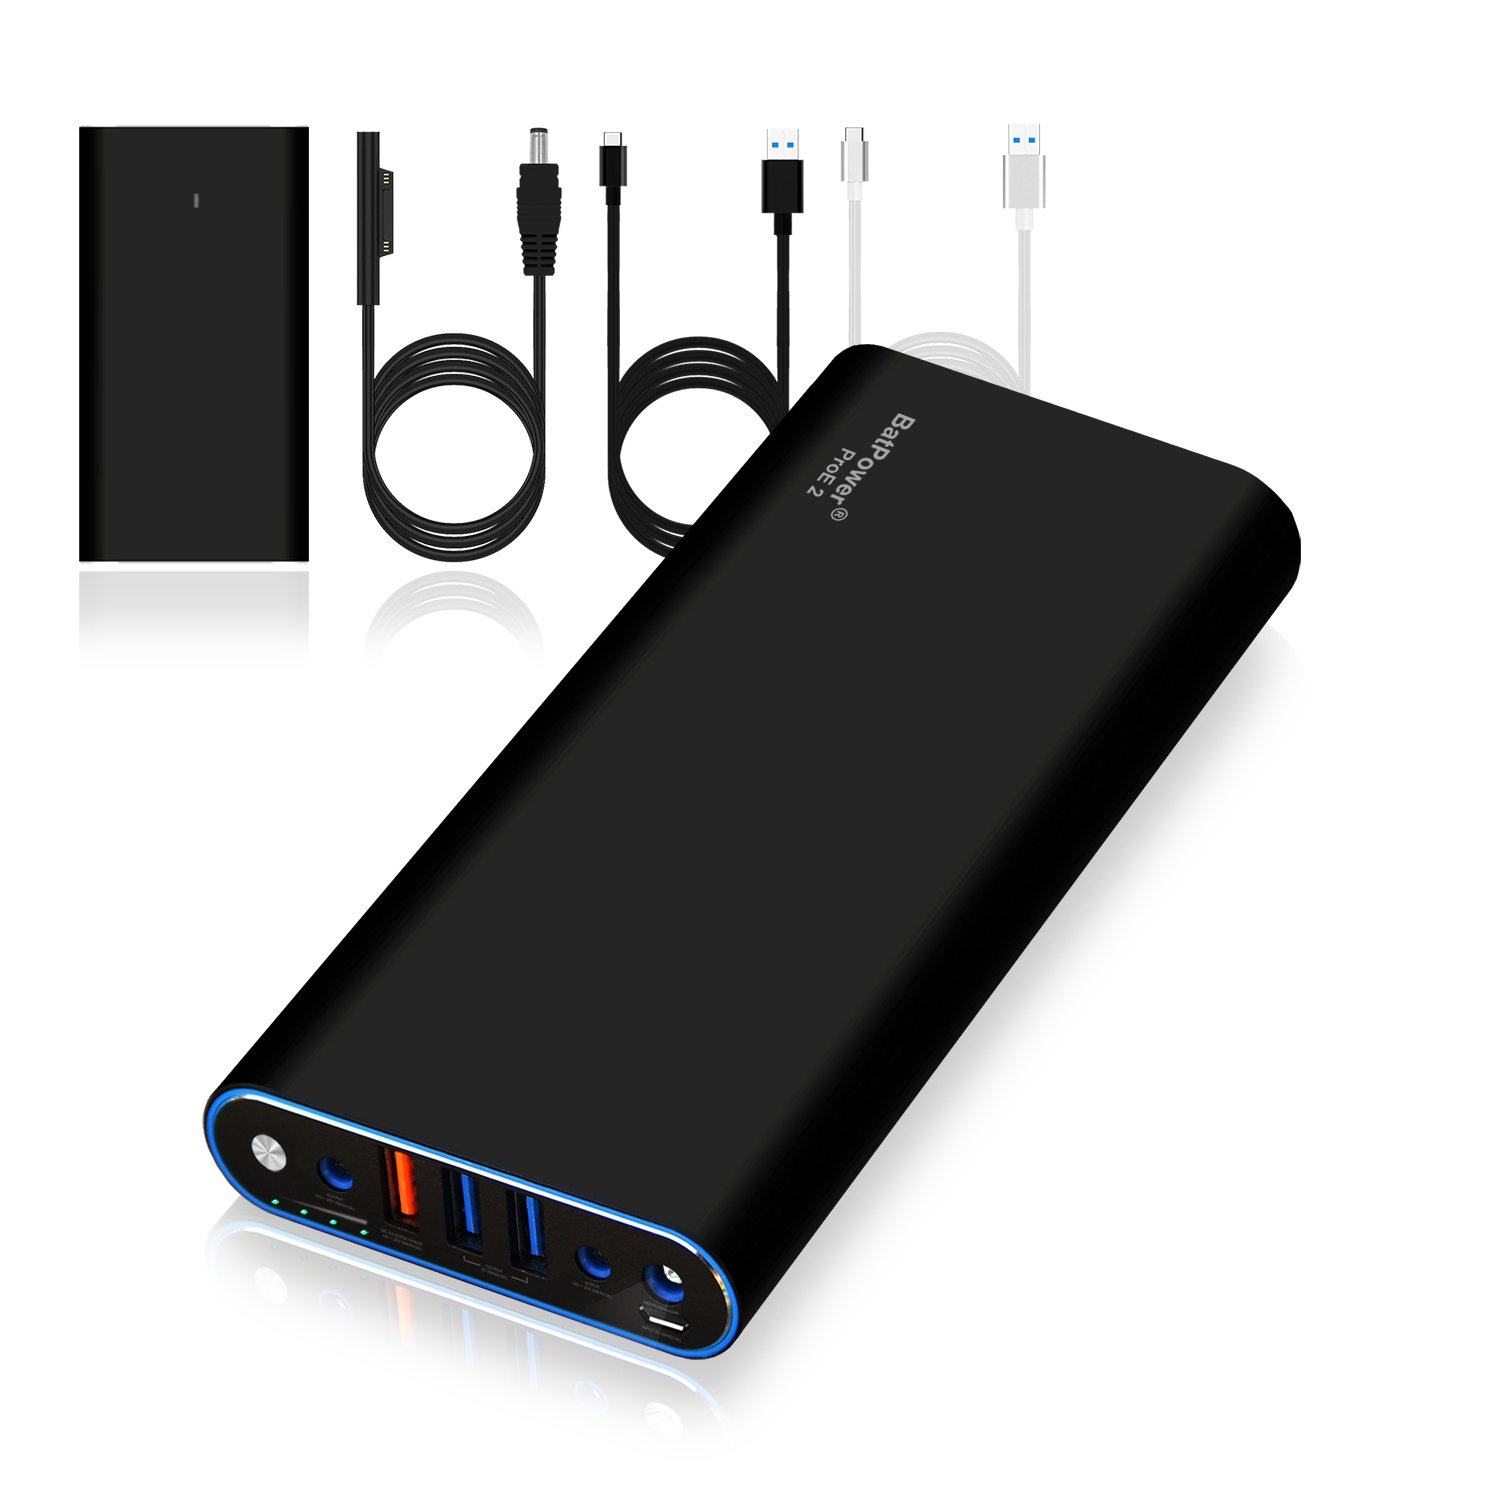 BatPower ProE 2 ES10 Portable Charger External Battery Power Bank for Surface Laptop, Surface Book, Book 2, Surface Pro 4 / 3 / 2 and RT, USB QC 3.0 Fast Charging for Tablet or Smartphone -148Wh